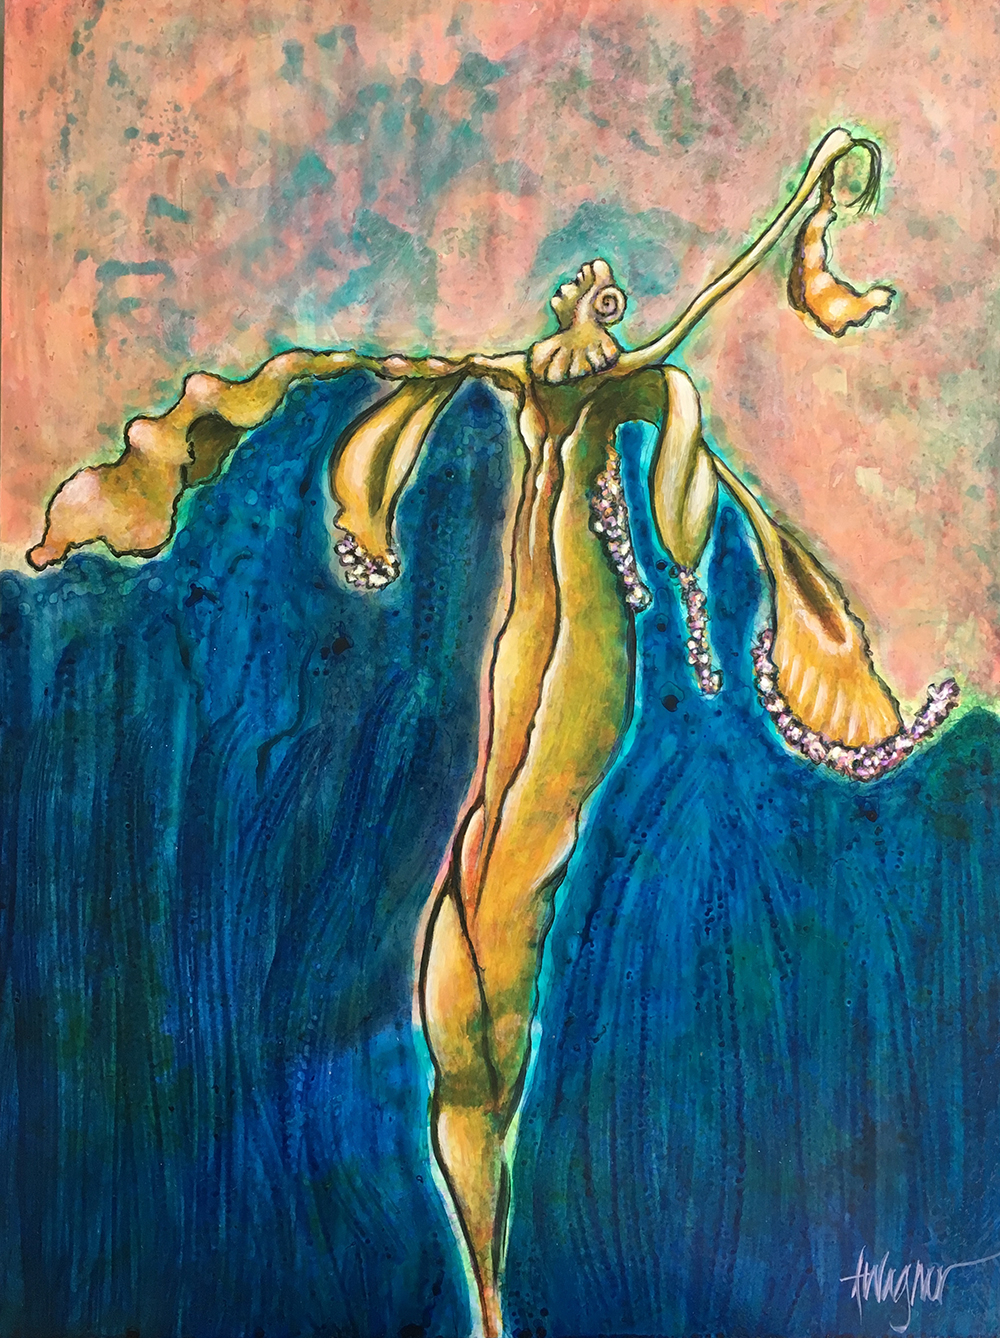 Dried Lily Woman by Annette Wagner will be in the Women/Strength Exhibit.